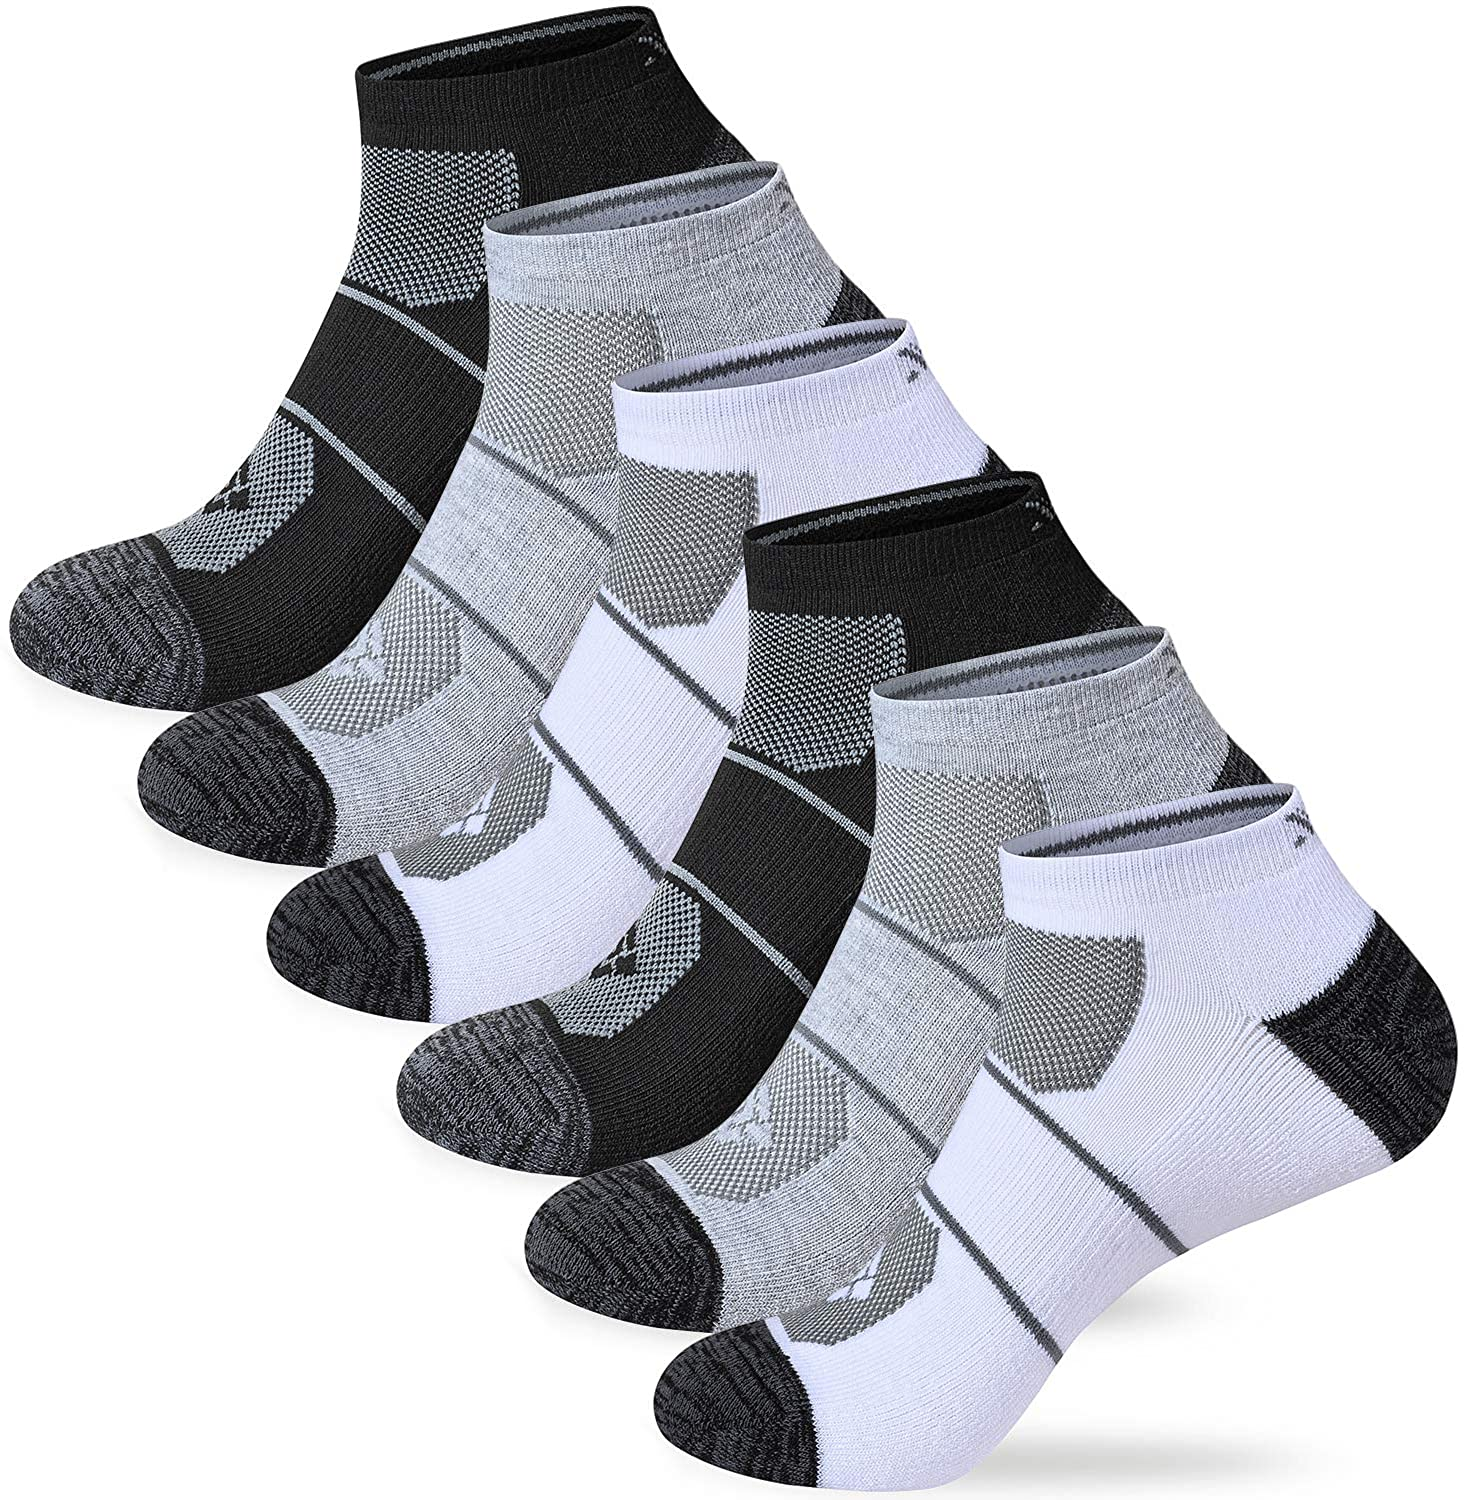 Akula Men's Socks Low-cut Sports Cushioning Running Socks Breathable Ankle Socks Size 10-13 (6 pairs)